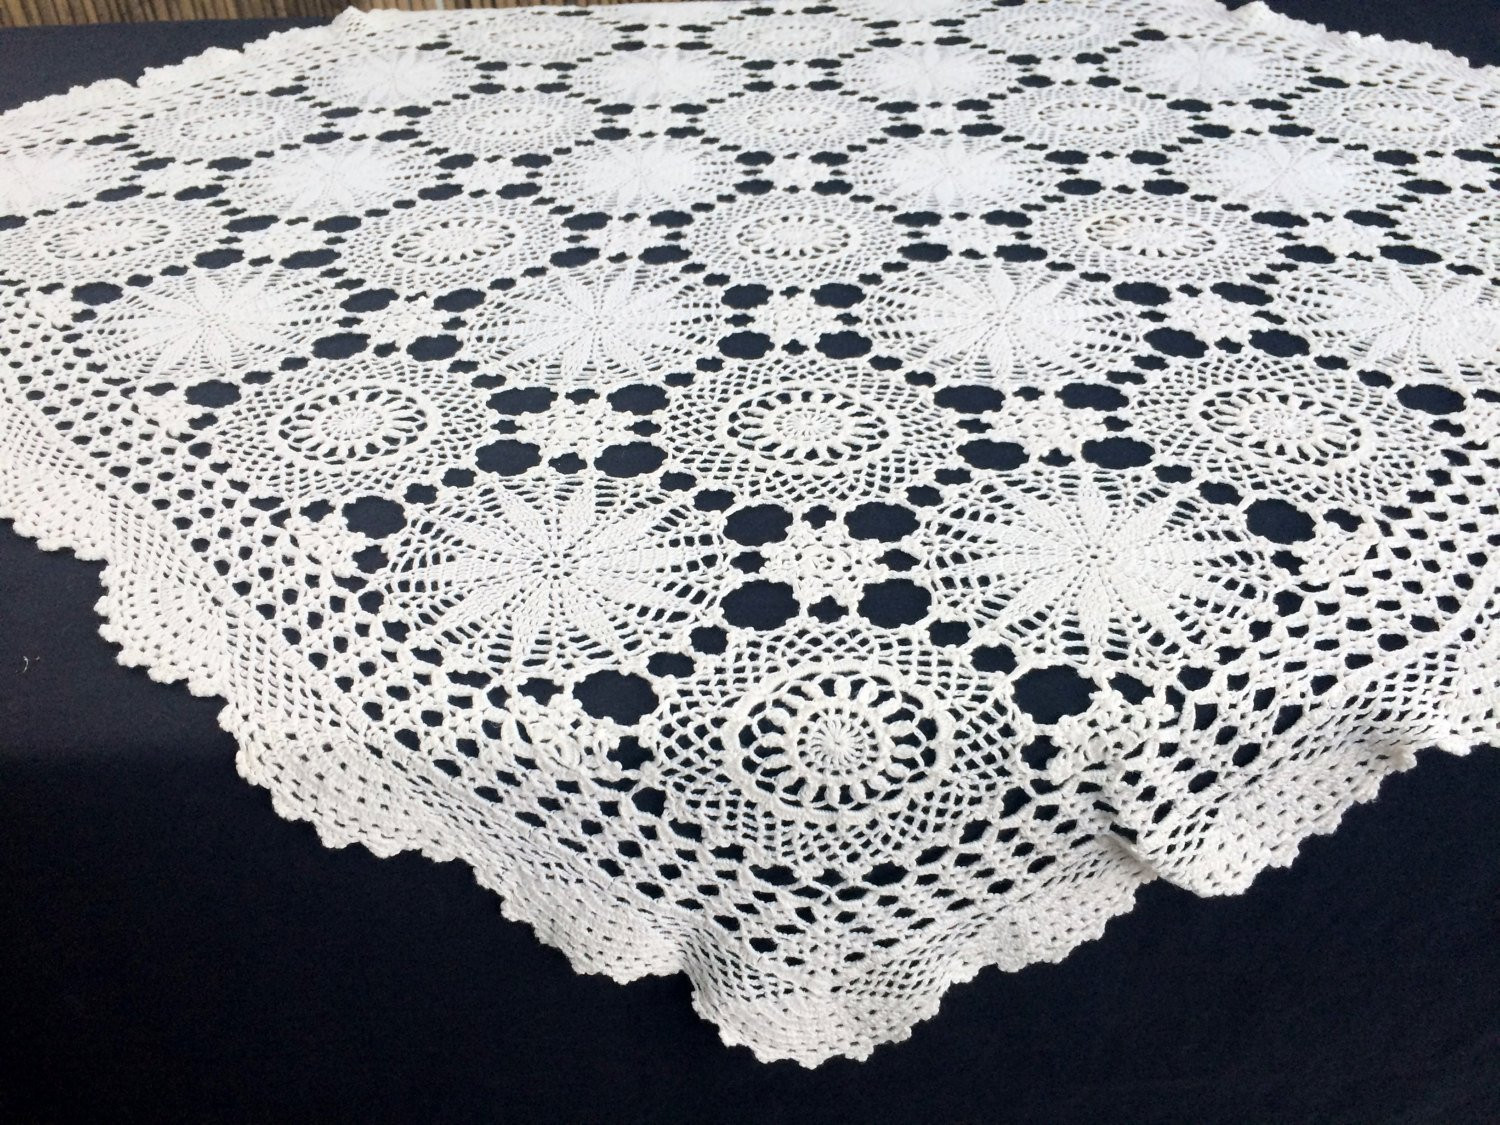 Crochet Lace Tablecloth Awesome Crochet Tablecloth Lace Tablecloth Vintage Tablecloth Of Unique 41 Models Crochet Lace Tablecloth